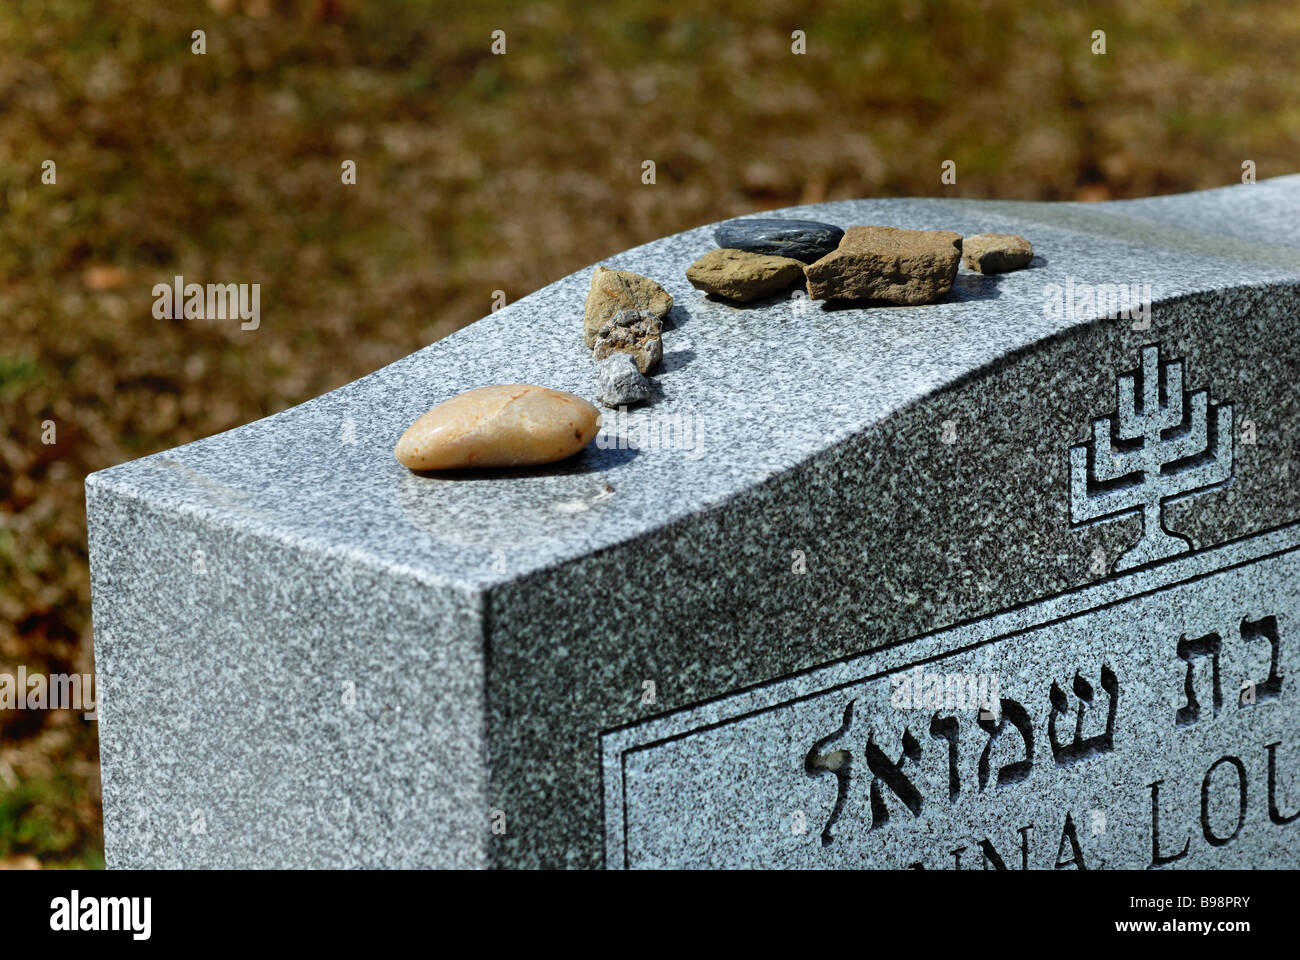 Visitation stones on Jewish grave, West View Cemetery, Pittsburgh, Pennsylvania. - Stock Image